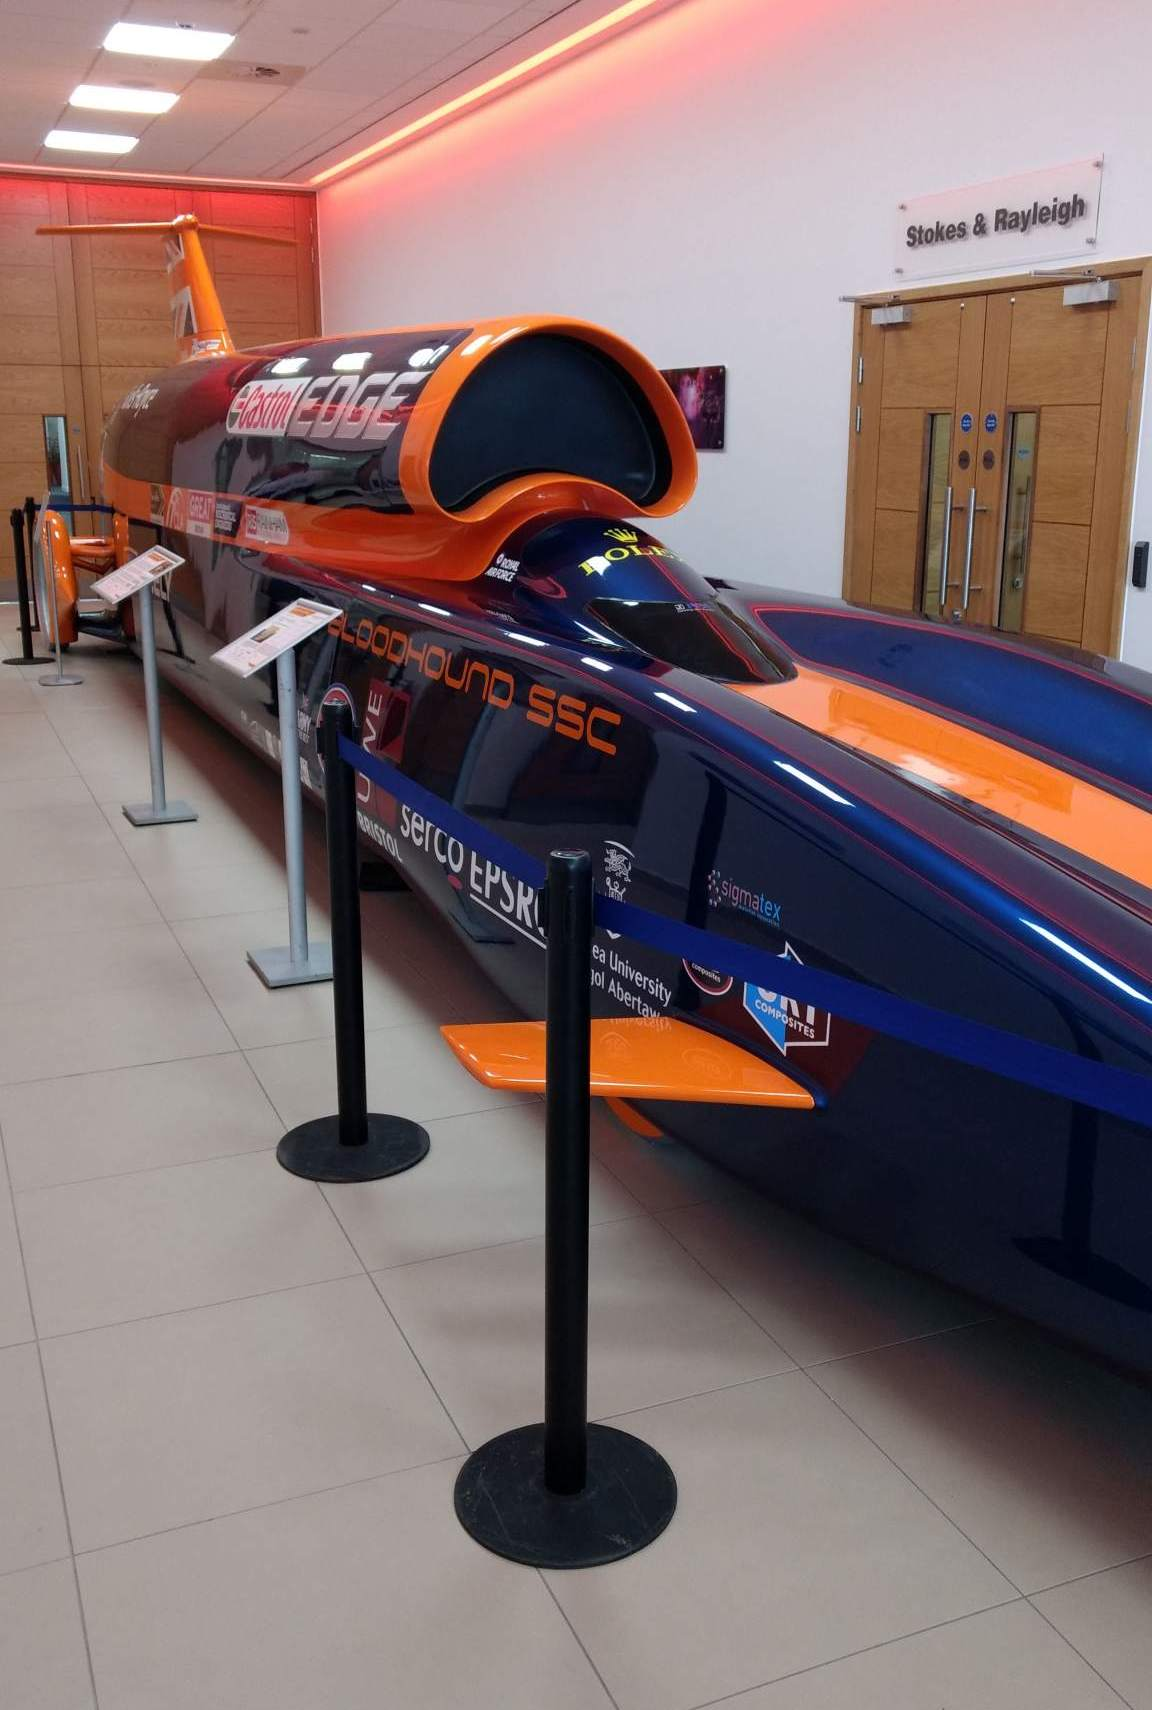 The Bloodhound SSC displayed at Renishaw Innovation Center. Photo by Corey Clarke.